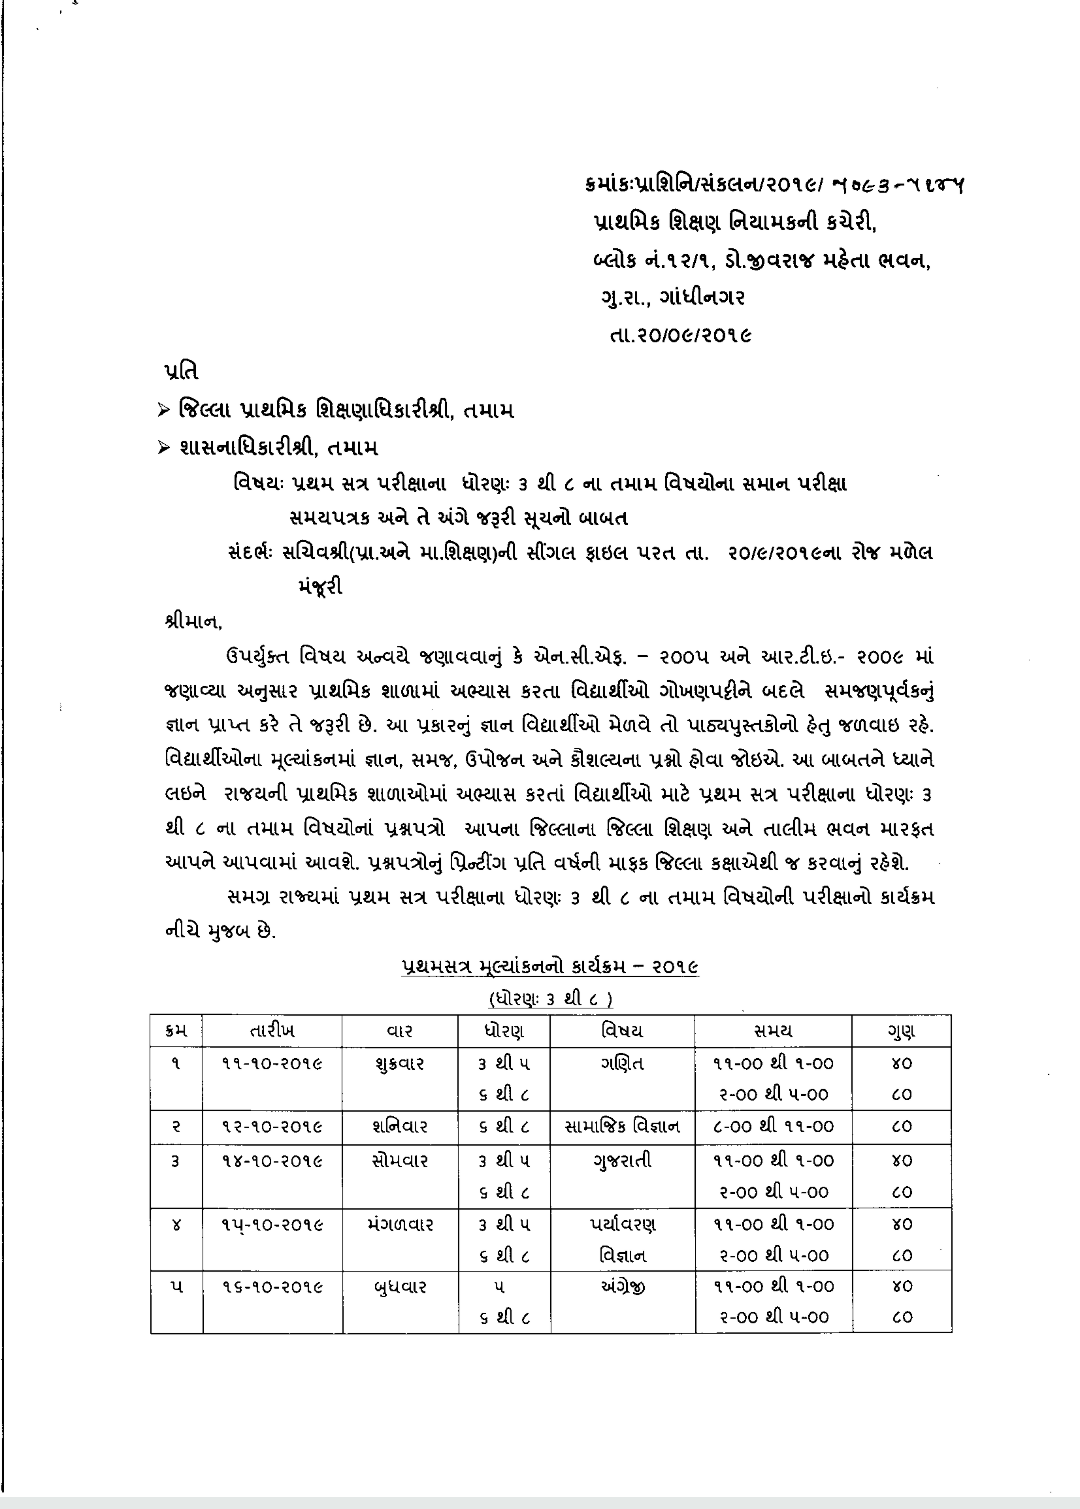 FIRST SEMESTER Exam Time Table -2019